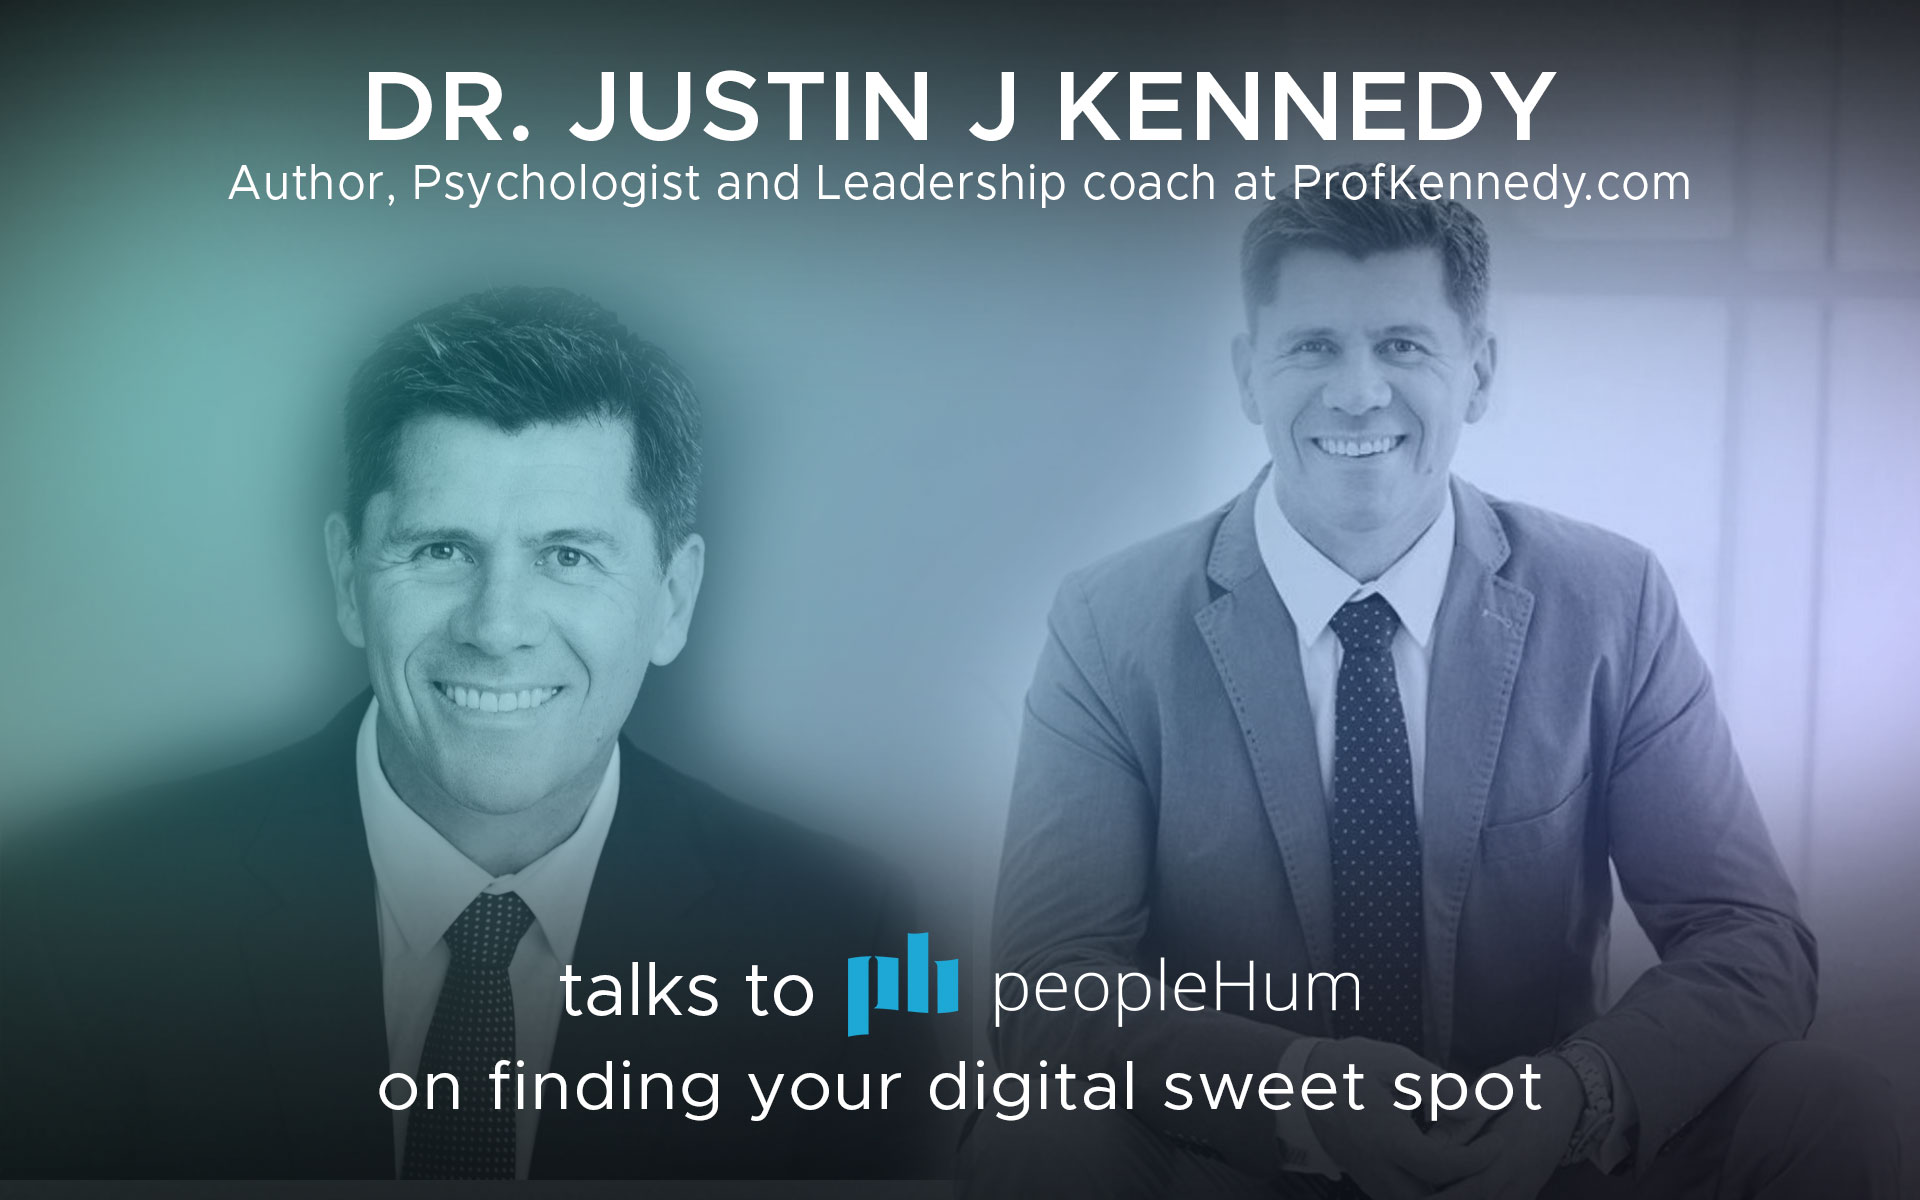 Finding your digital sweet spot - Dr. Justin J Kennedy [Interview]